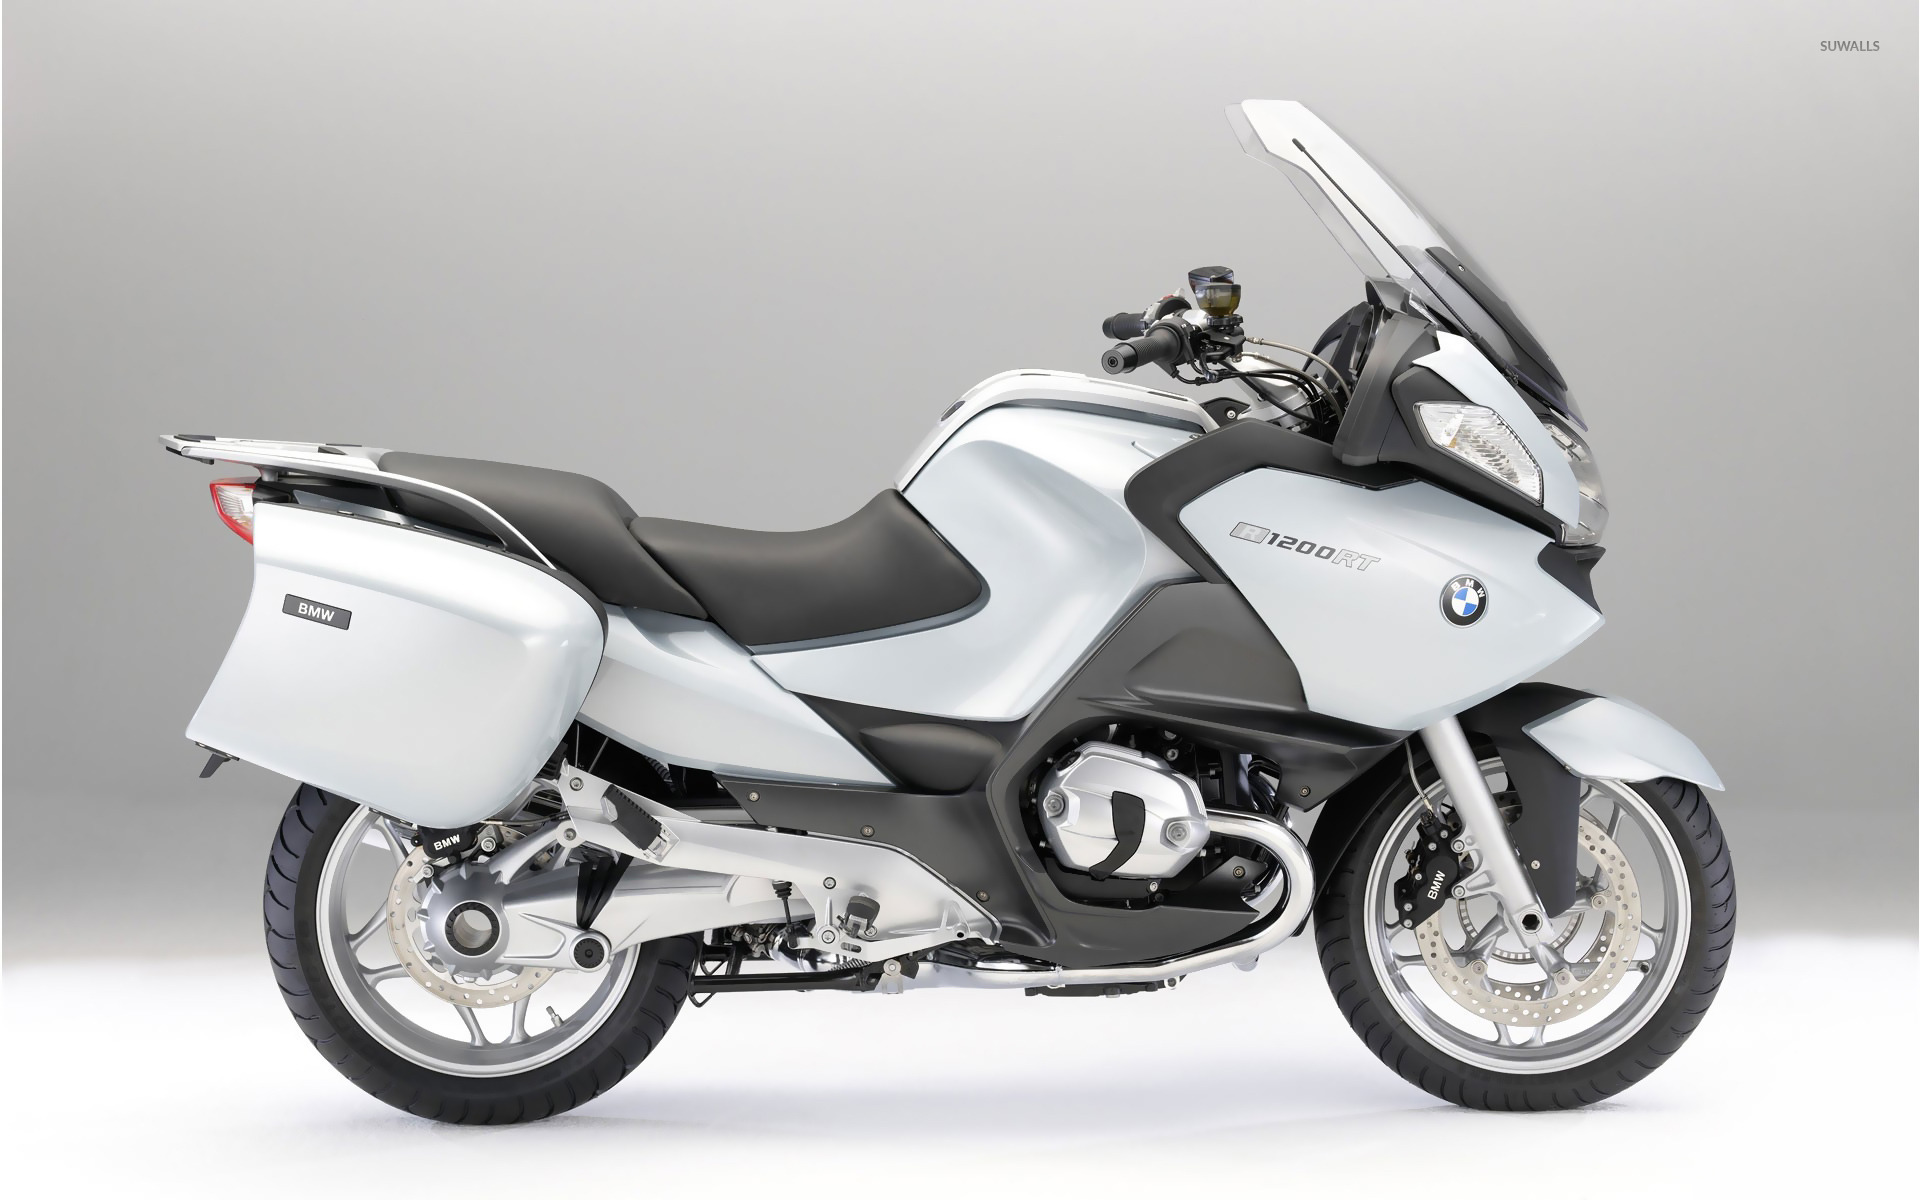 bmw r1200rt 4 wallpaper motorcycle wallpapers 12480. Black Bedroom Furniture Sets. Home Design Ideas